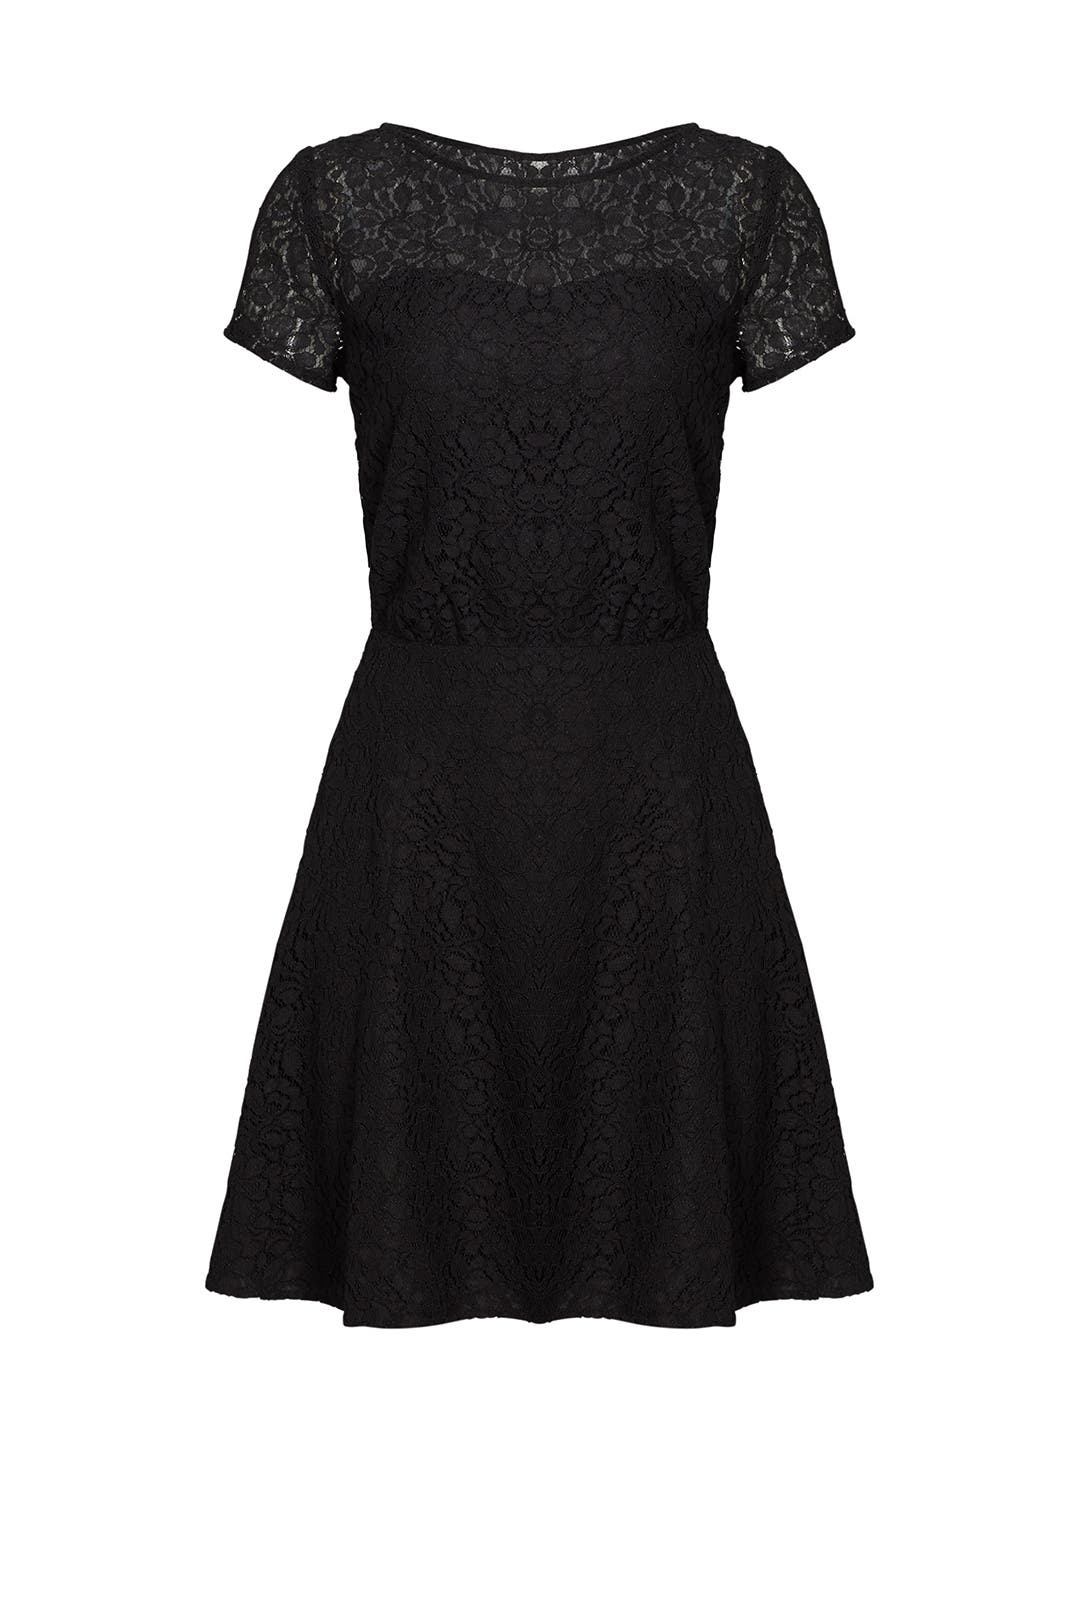 Black Lace Jolene Dress By Slate Amp Willow For 45 Rent